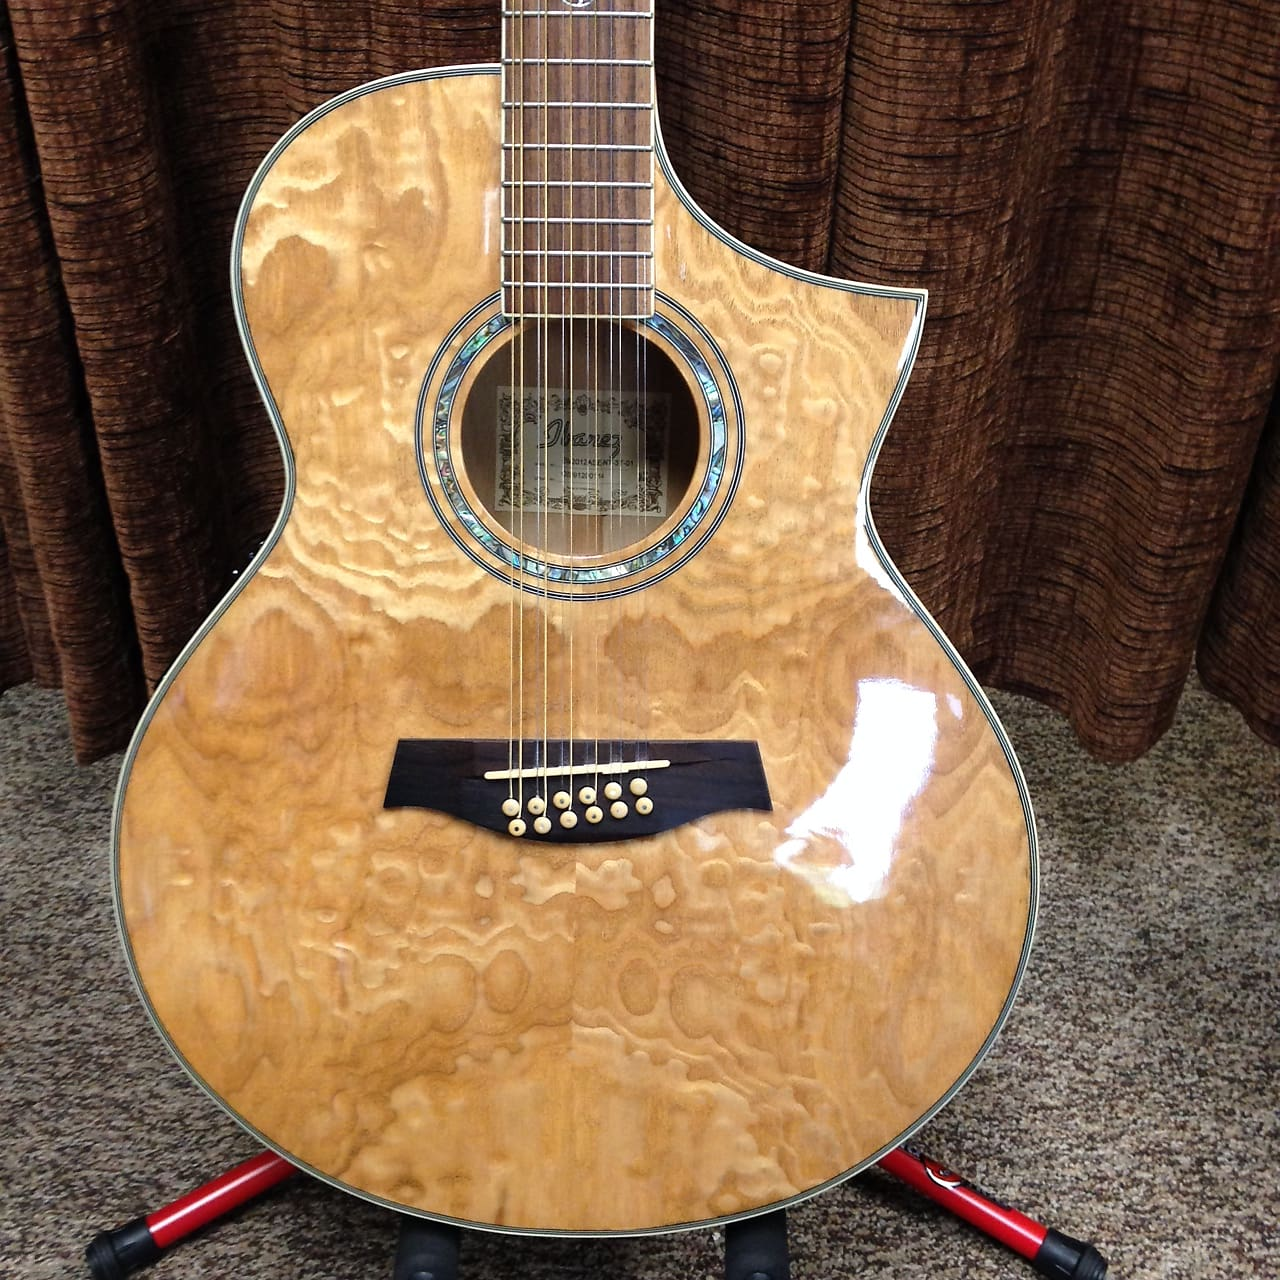 Ibanez Exotic Wood Ew2012ase Acoustic Electric 12 String Figured Ash Body